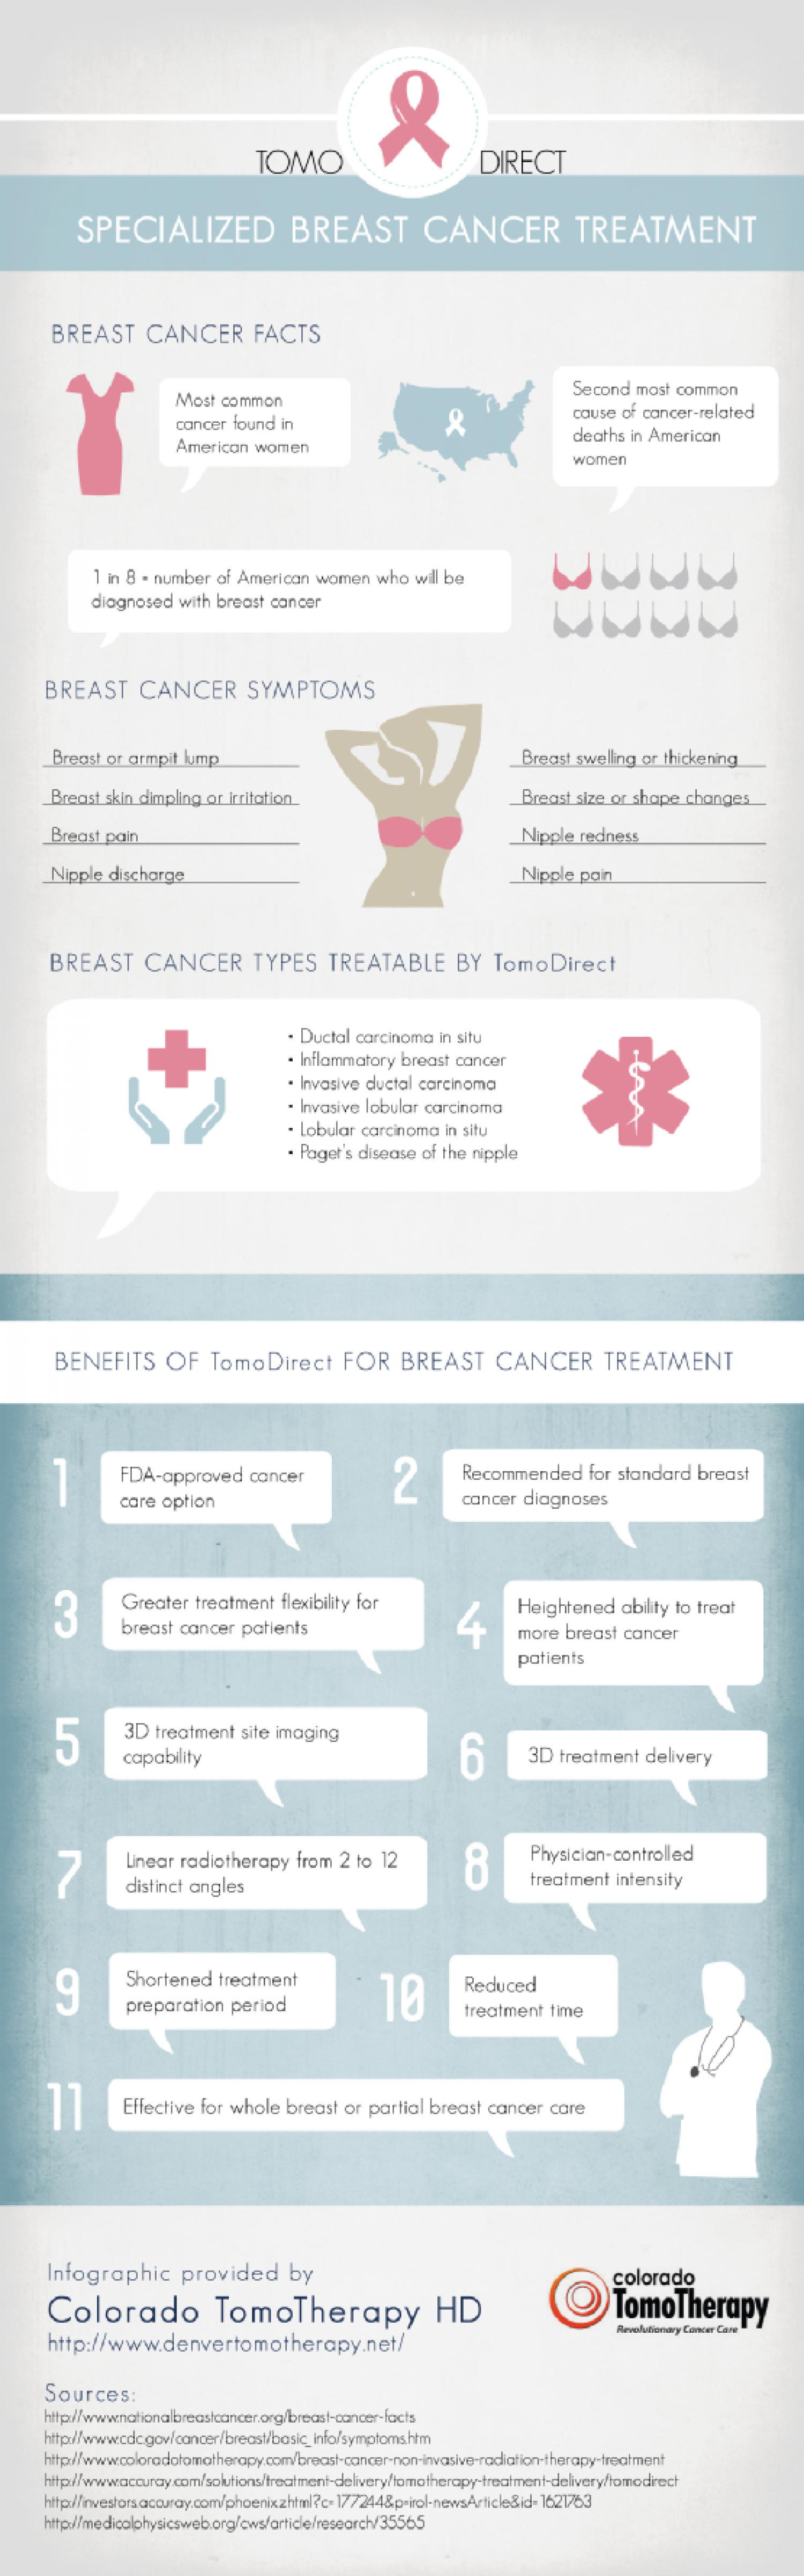 TomoDirect: Specialized Breast Cancer Treatment Infographic